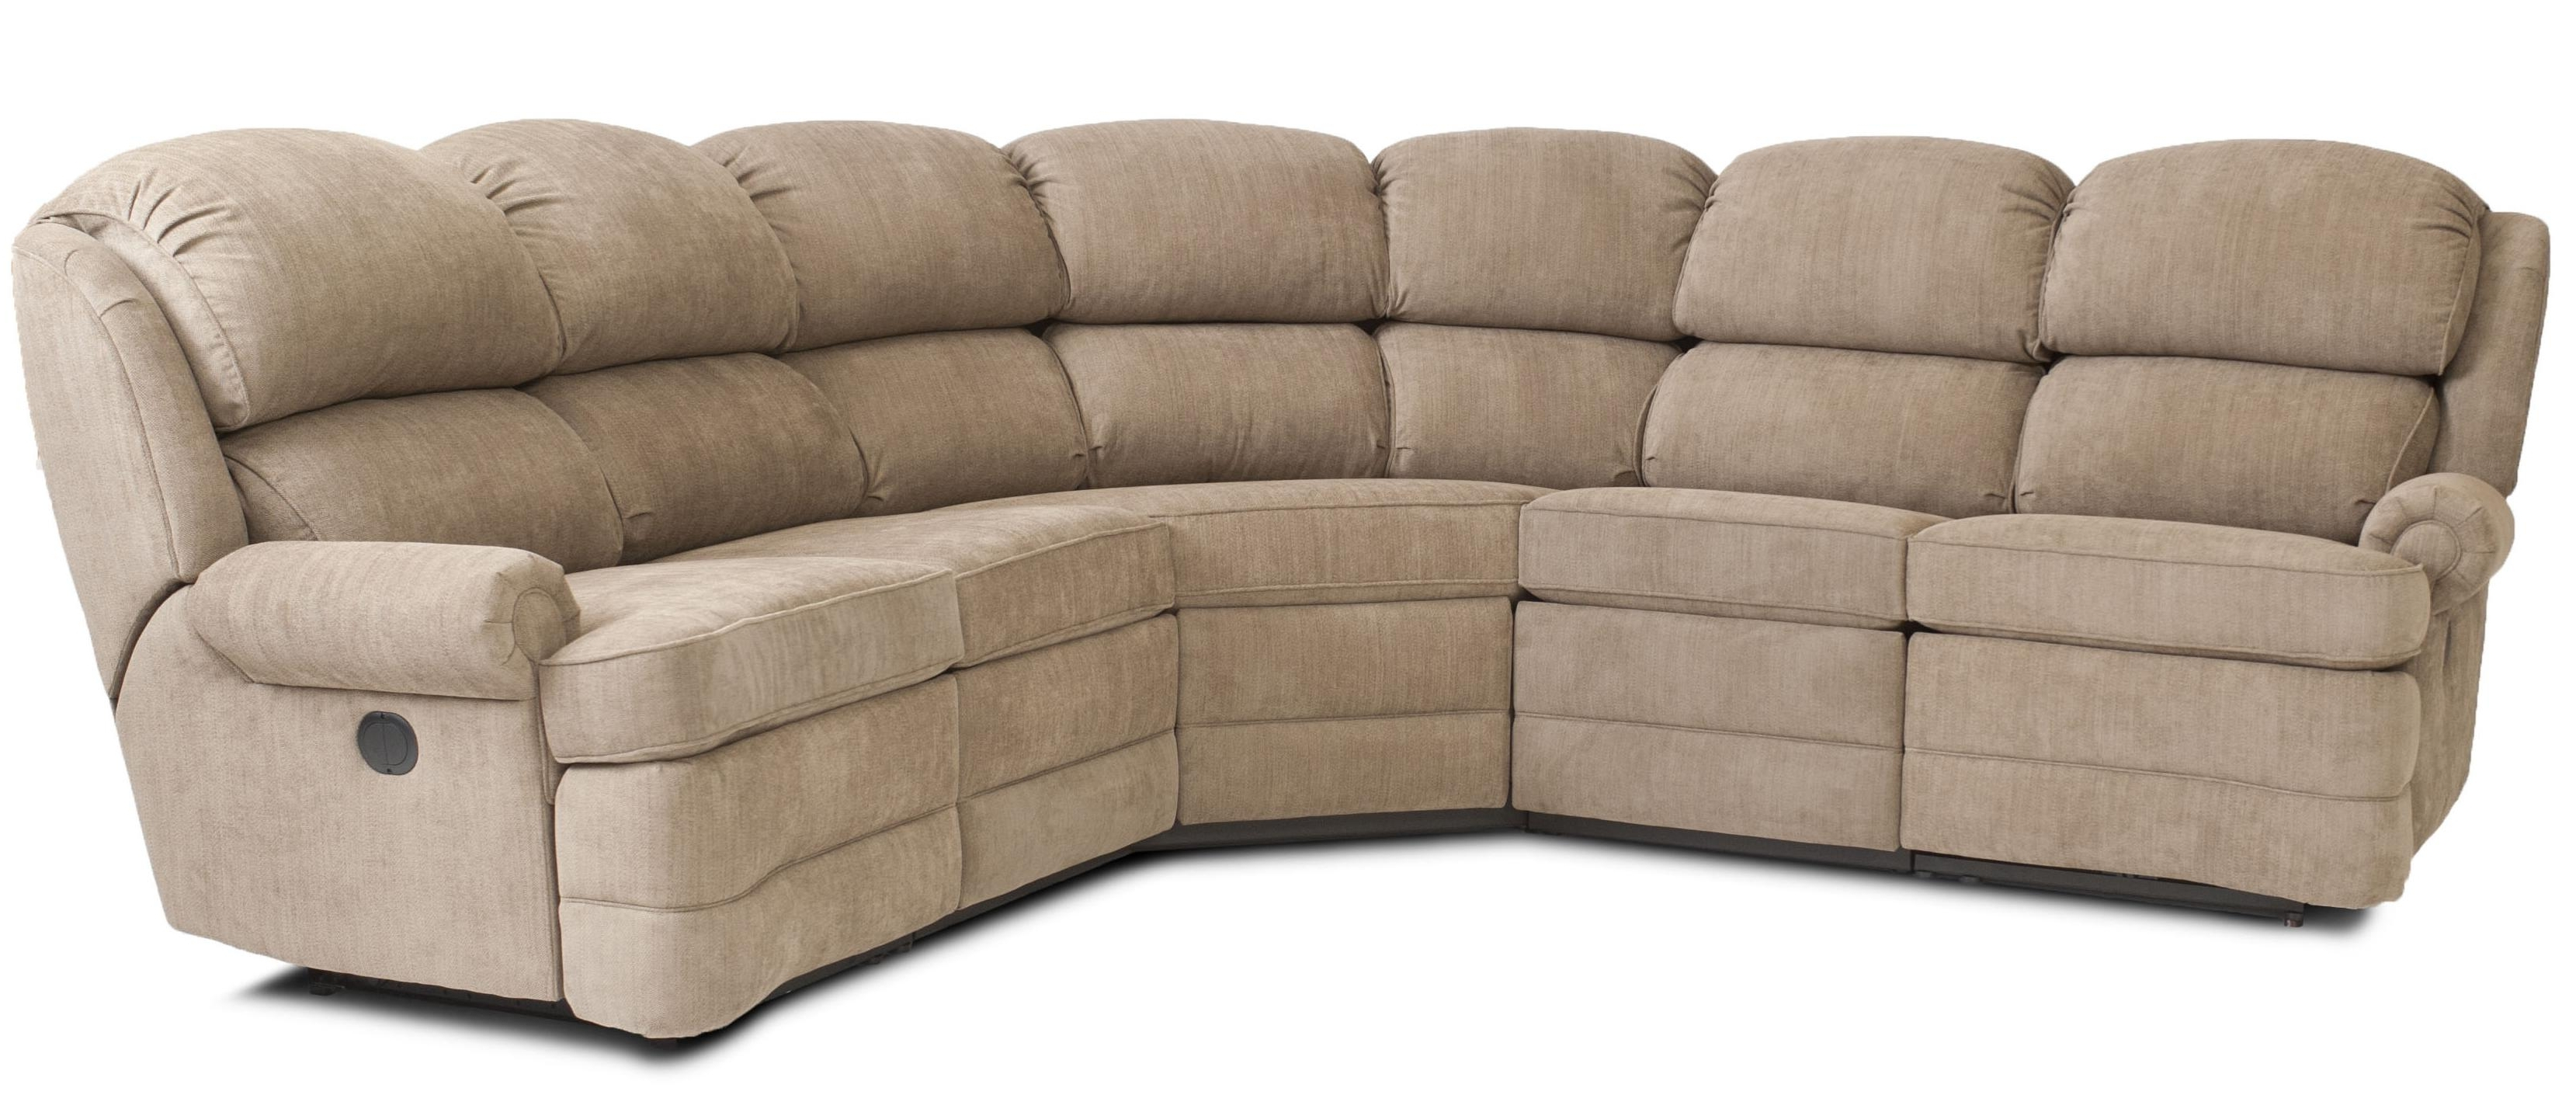 Preferred Beautiful Leather Sectional With Chaise And Recliner Gallery For 10X8 Sectional Sofas (View 17 of 20)